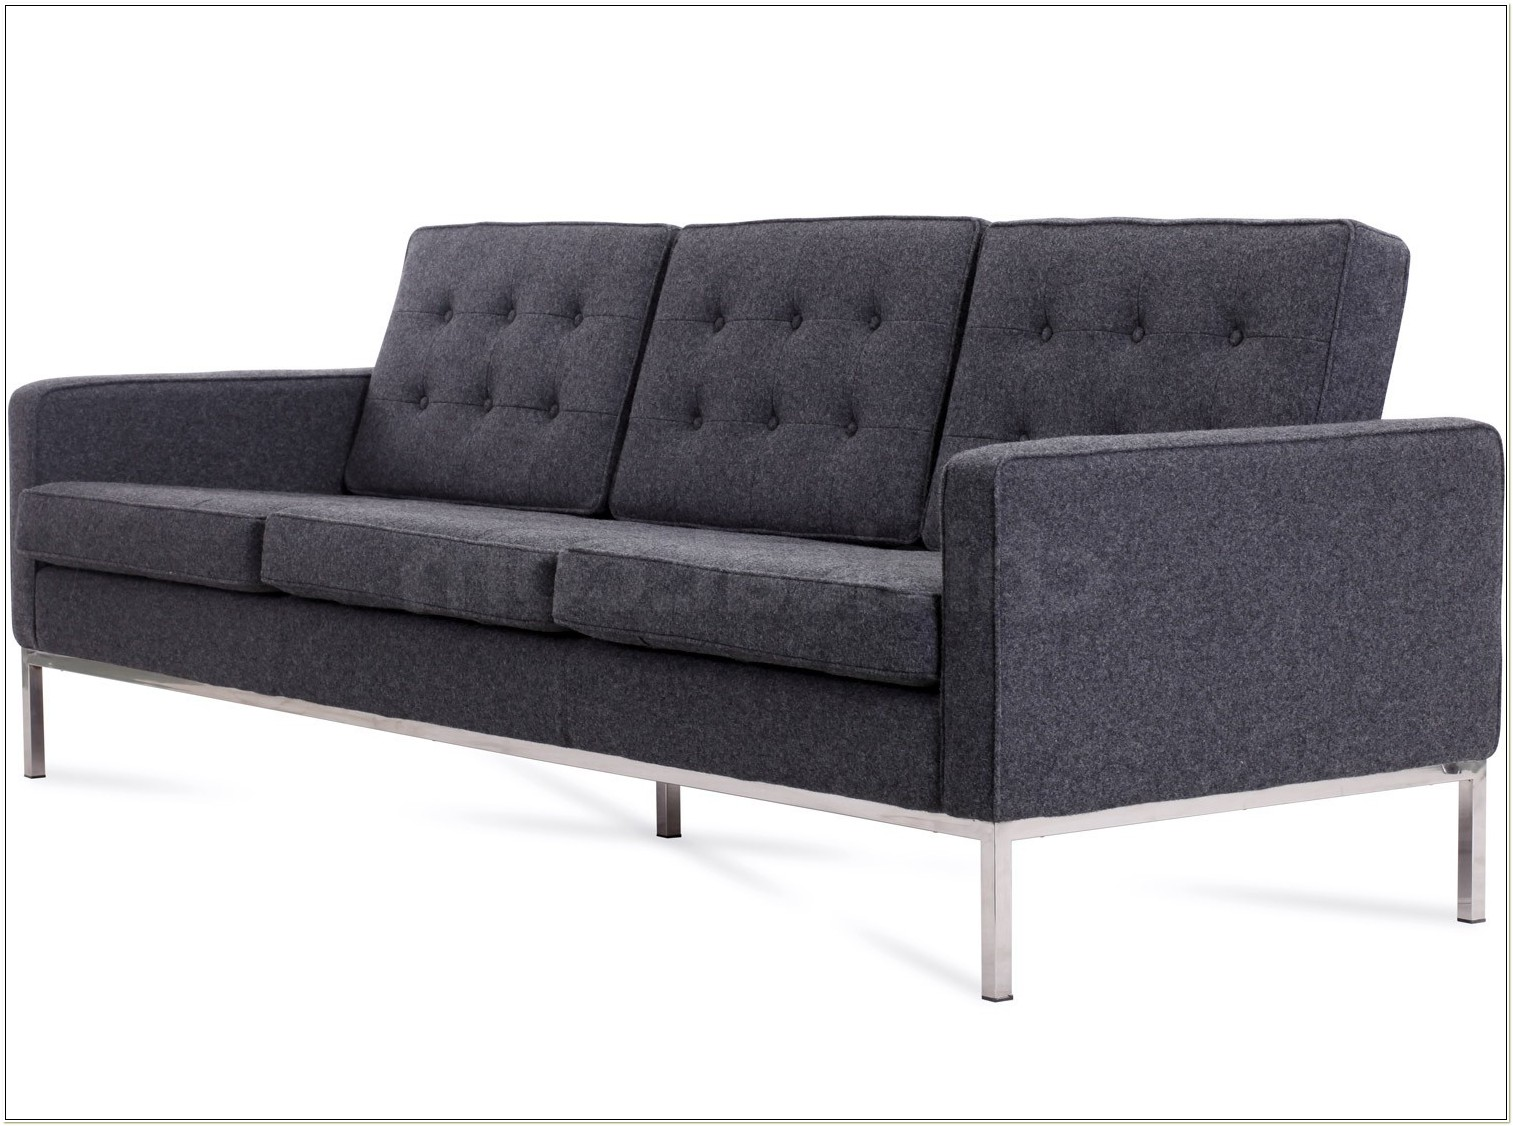 Florence Knoll Lounge Chair Replica